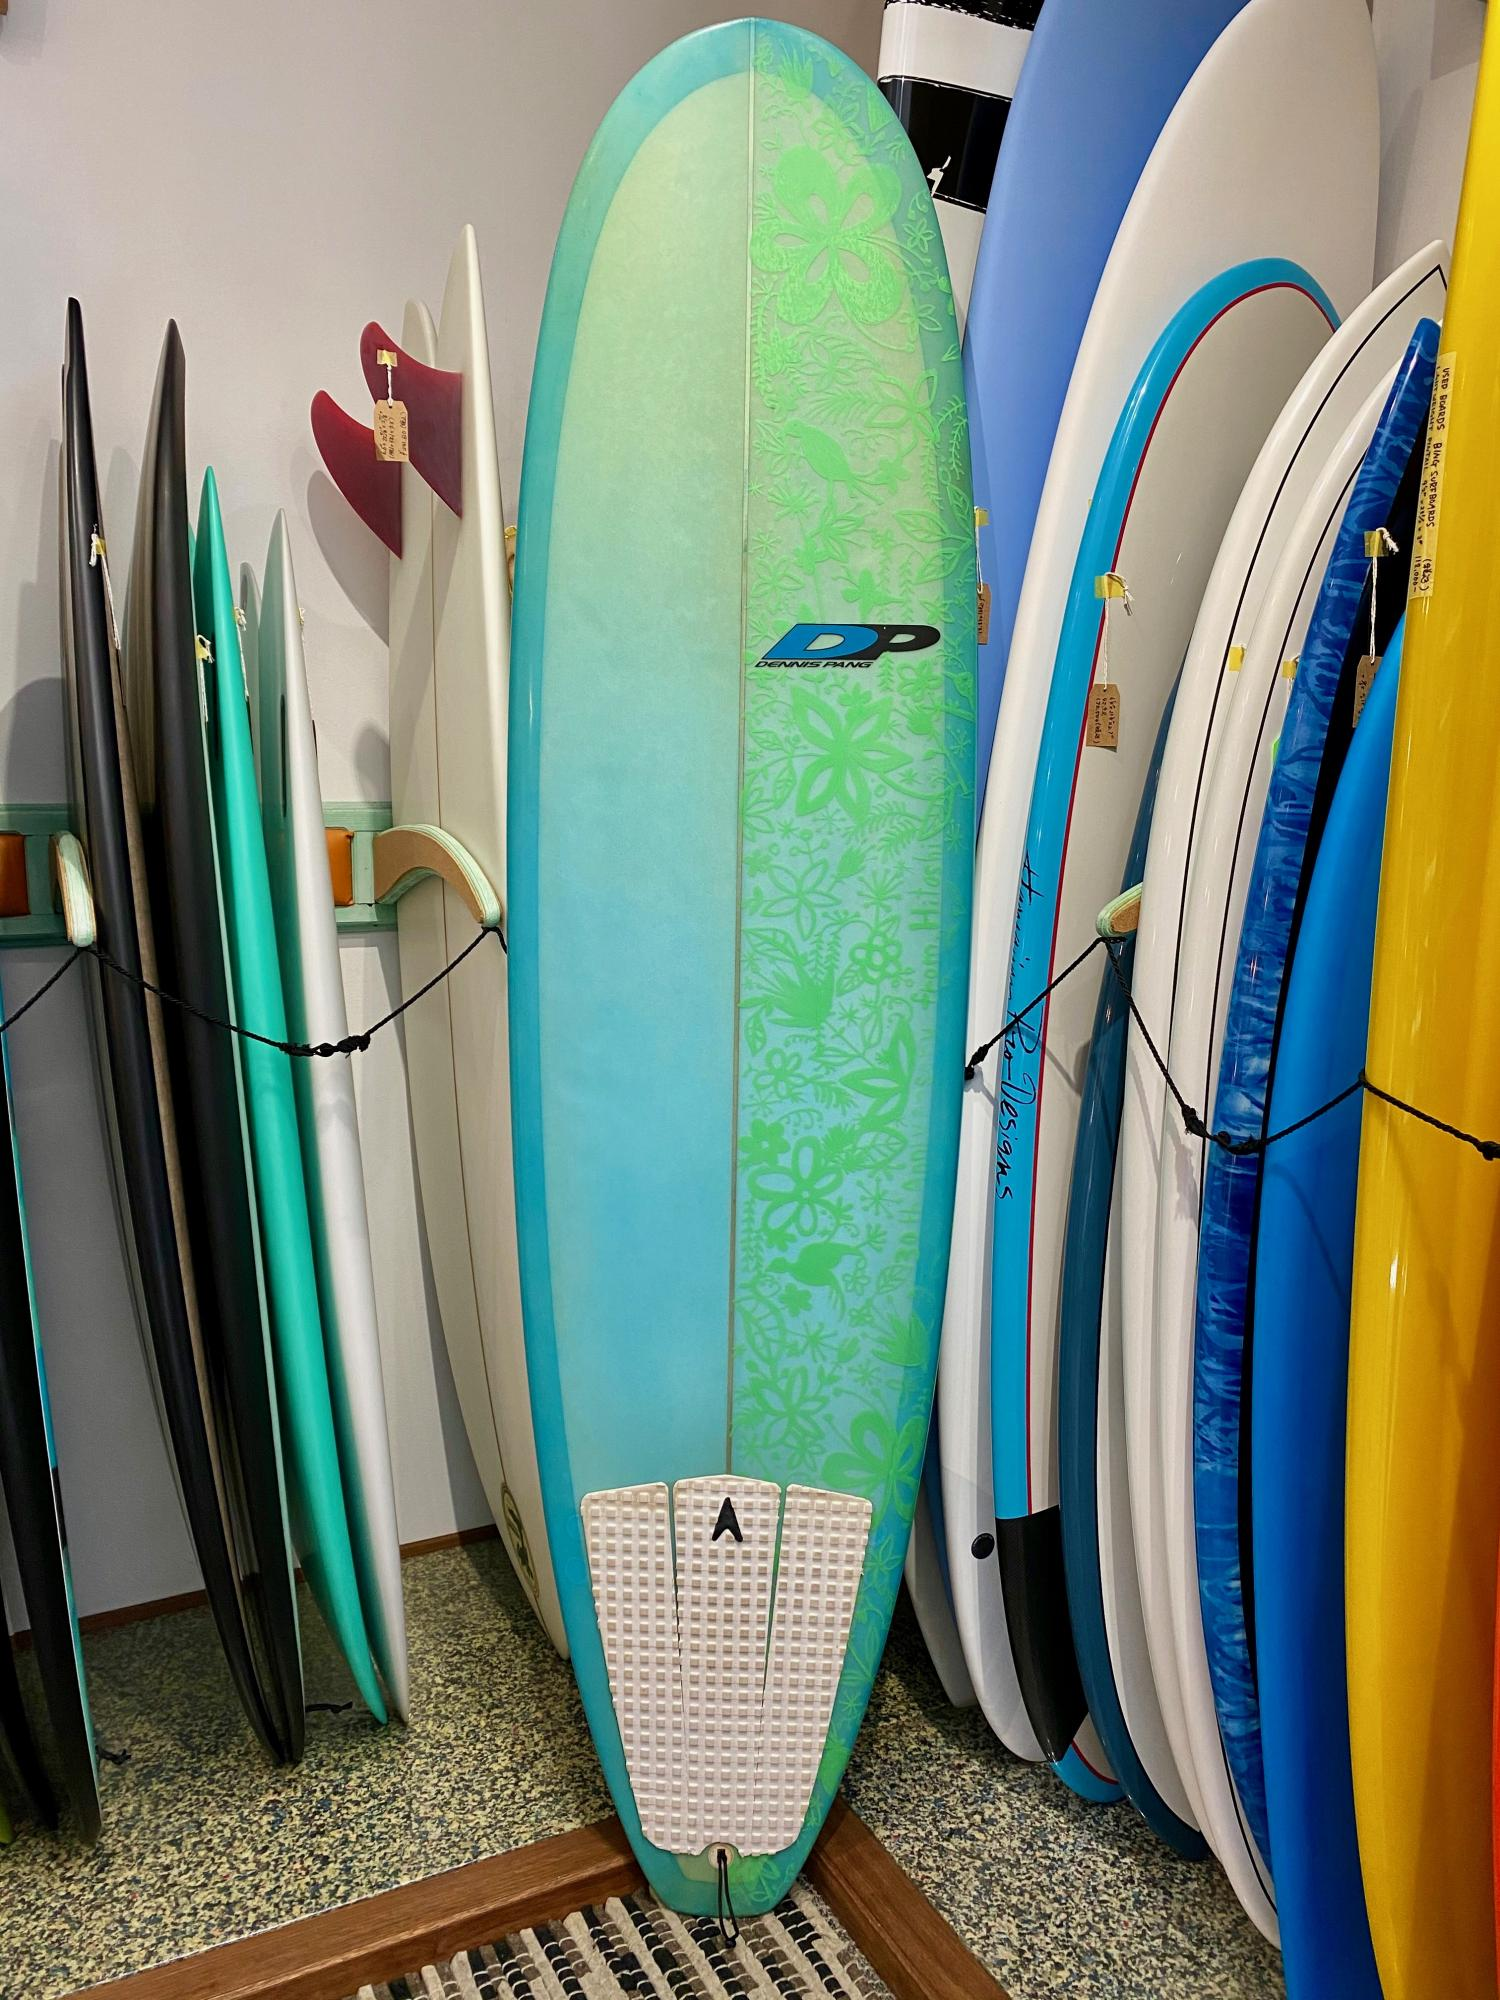 USED BOARDS (DENNIS PANG Surfboards 7.2)